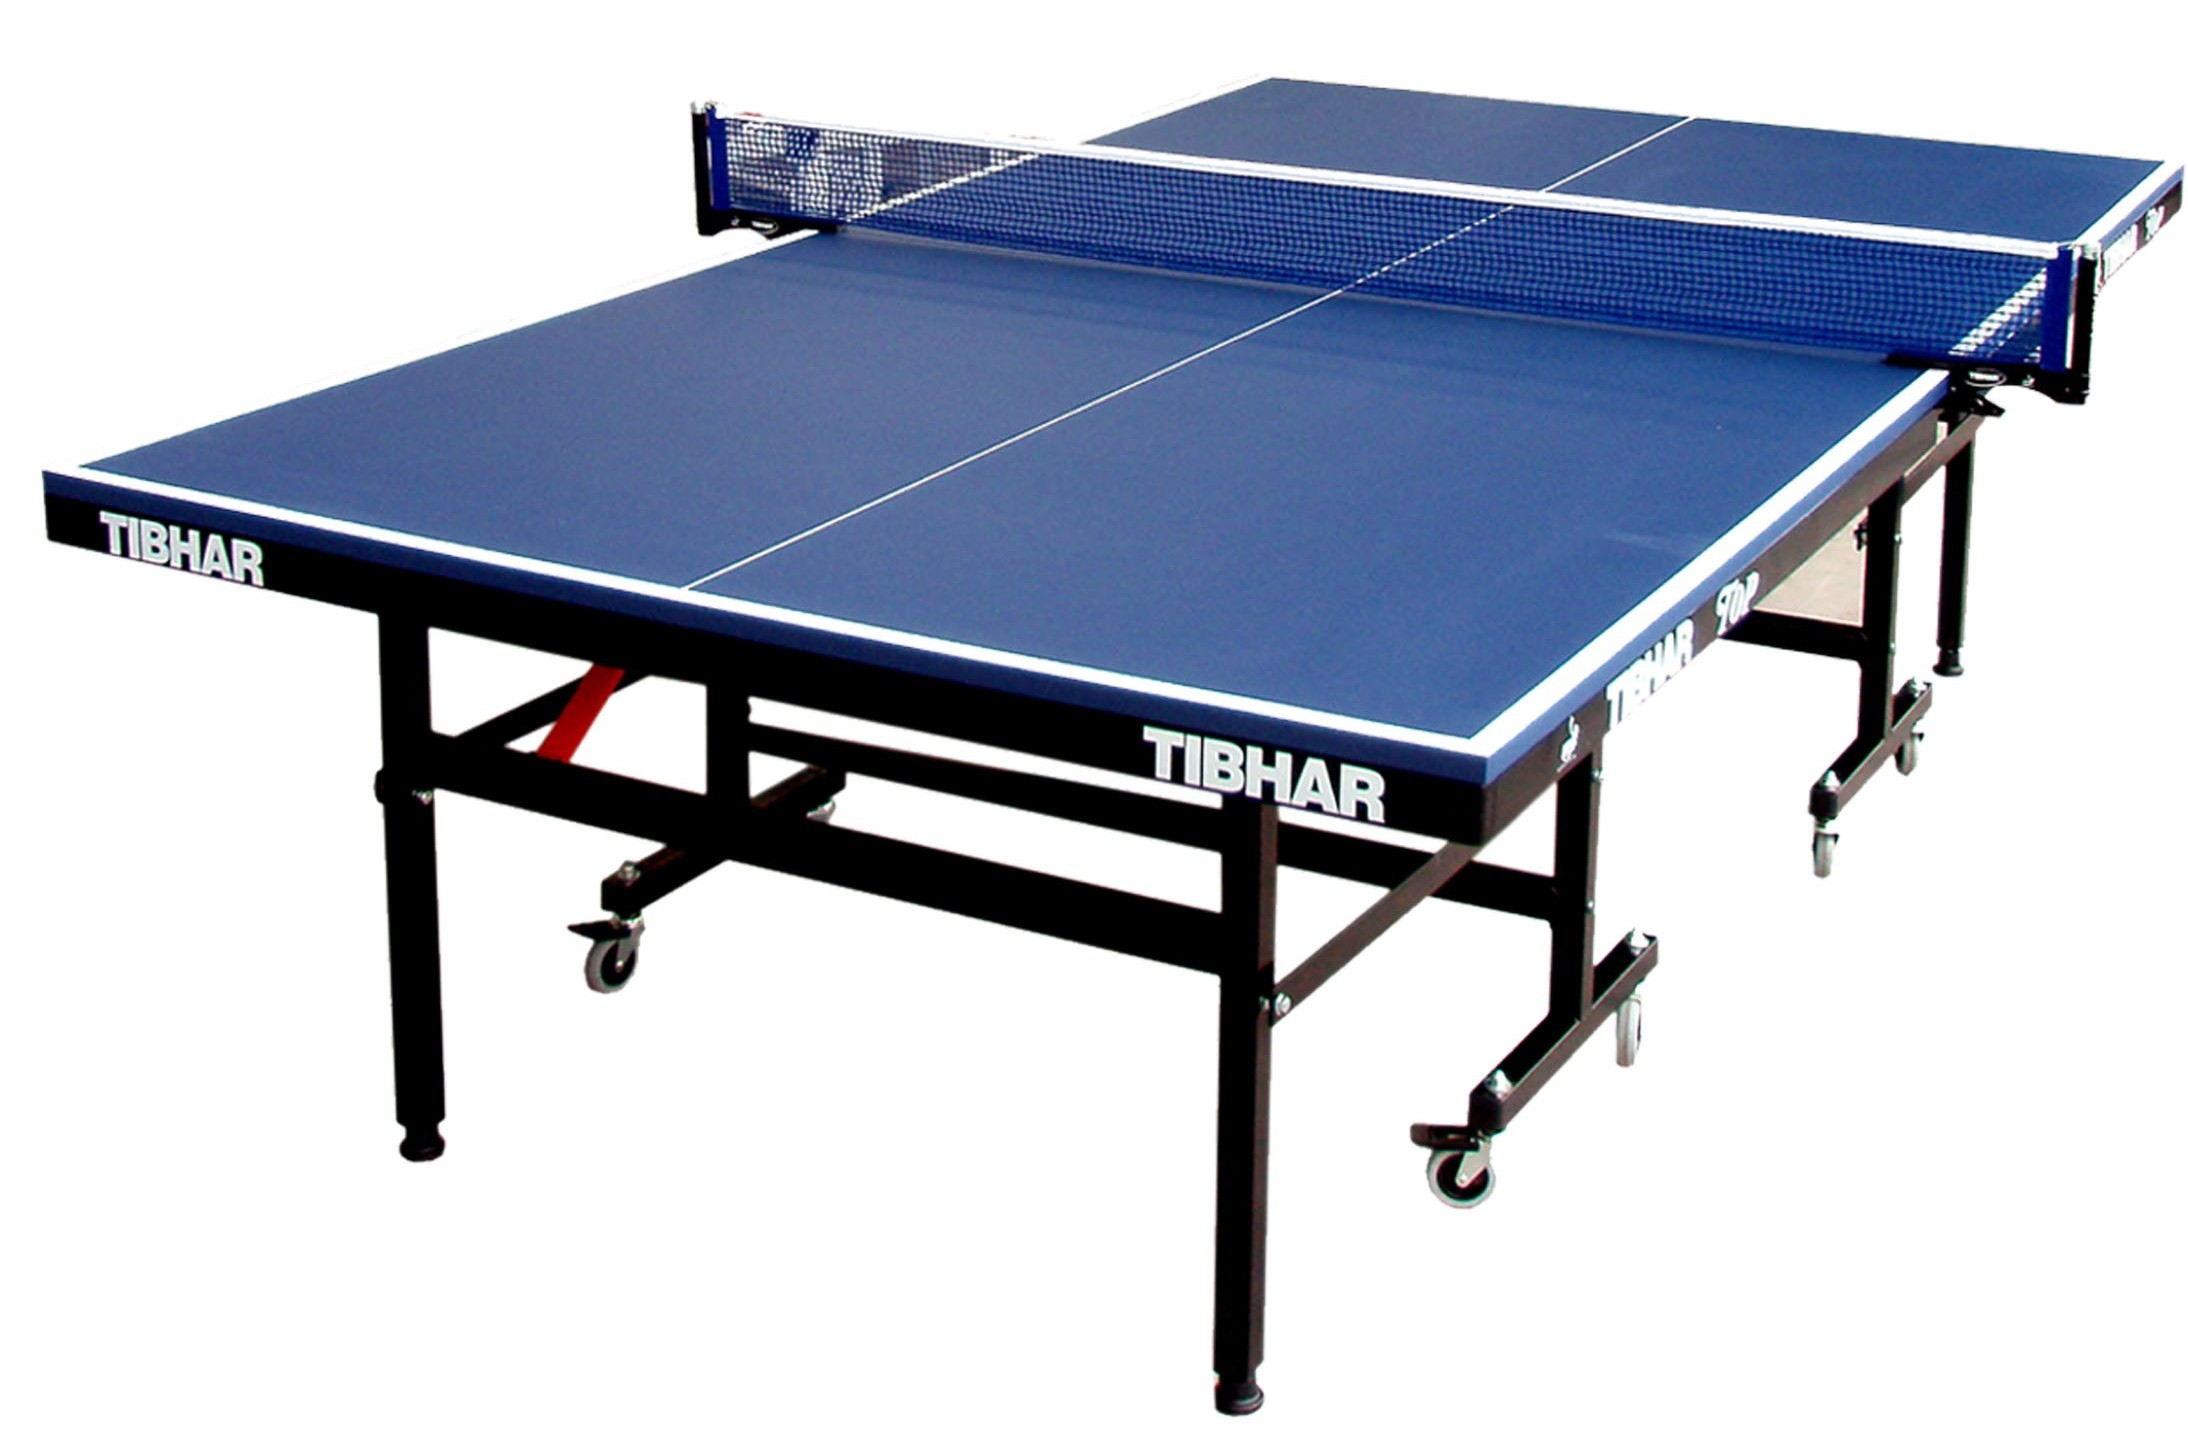 ping pong table for rent ping pong table tennis rental. Black Bedroom Furniture Sets. Home Design Ideas